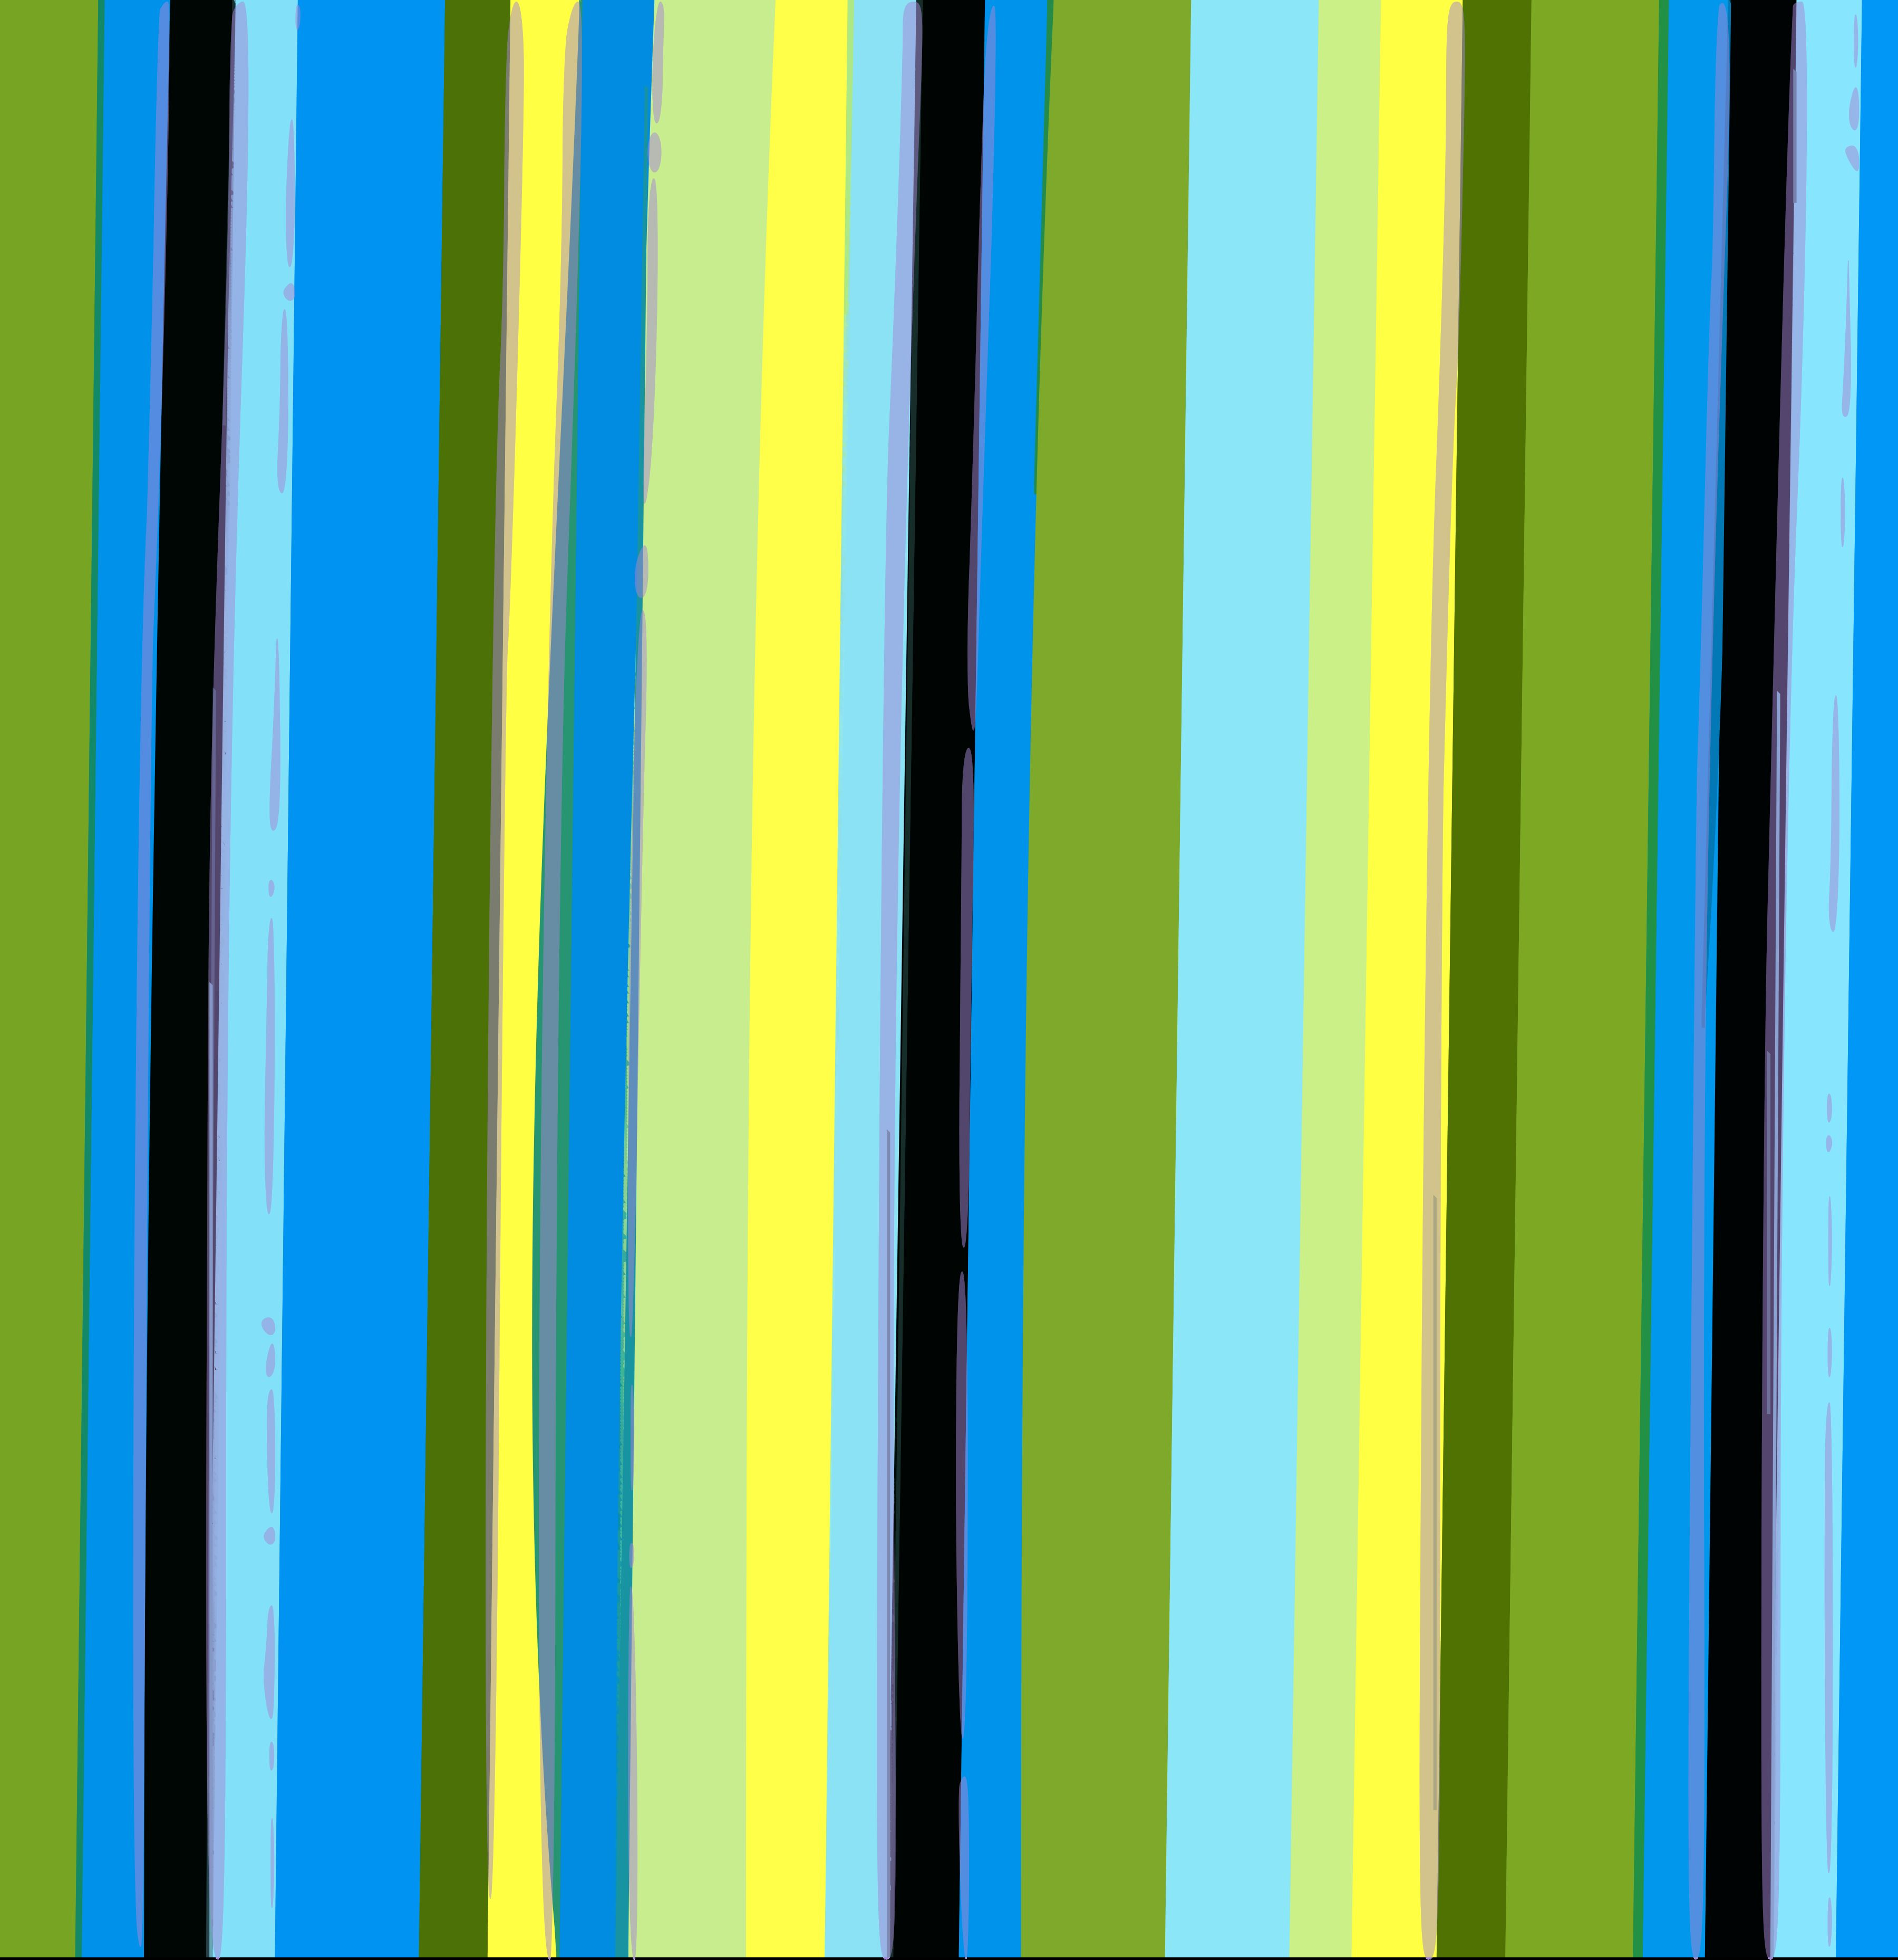 color-stripe-patterns-contemporary-art-10.jpg ...